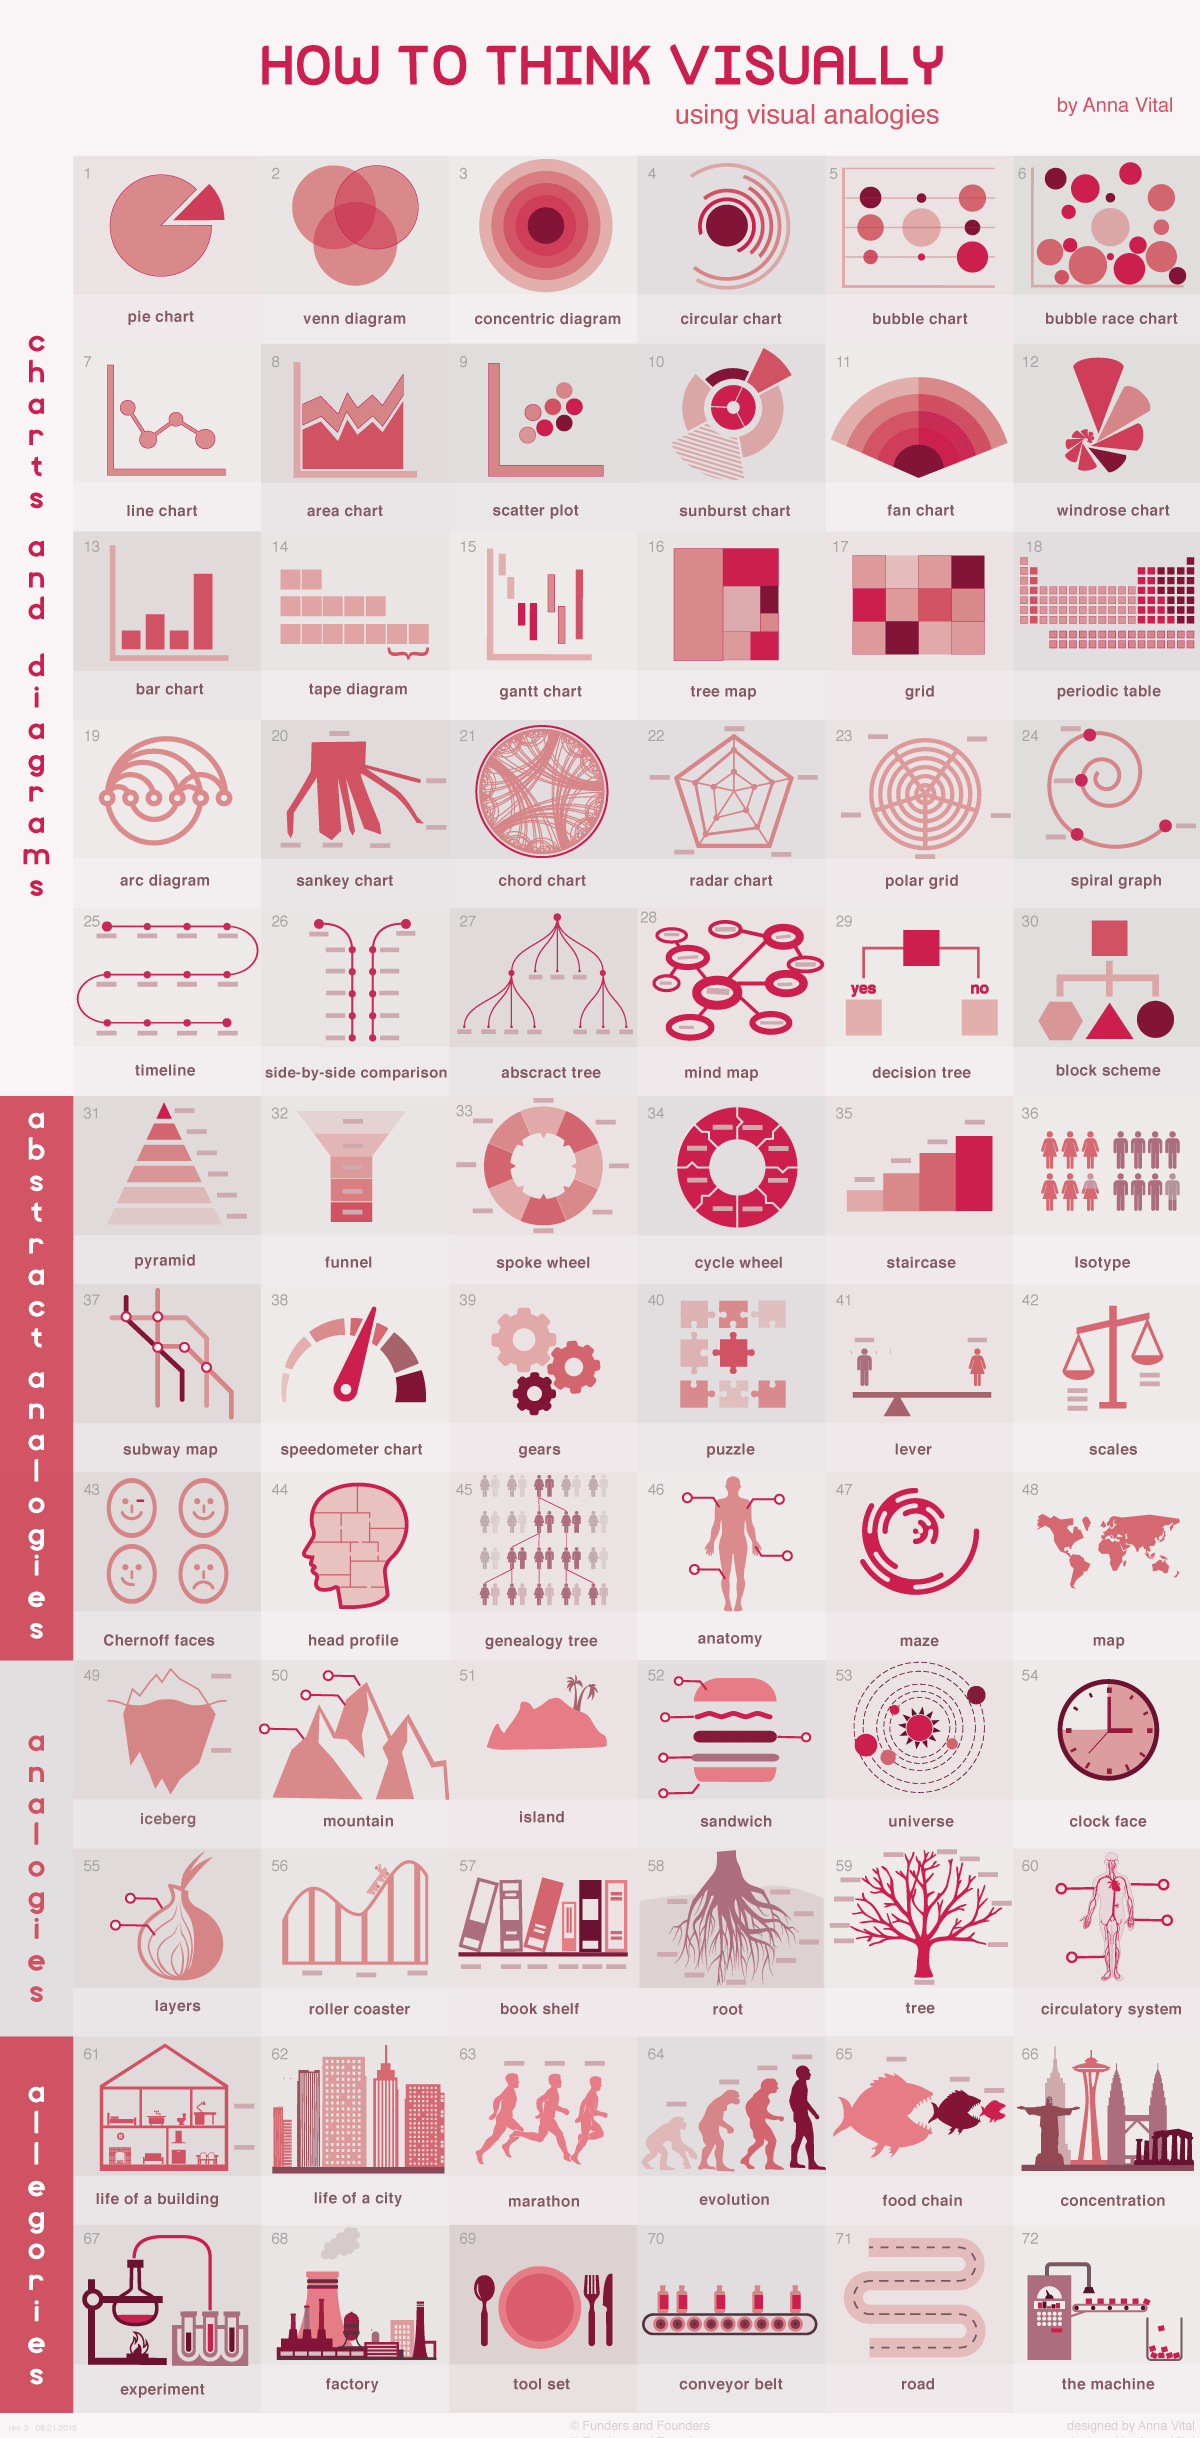 How To Think Visually Using Visual Analogies - Infographic - Adioma